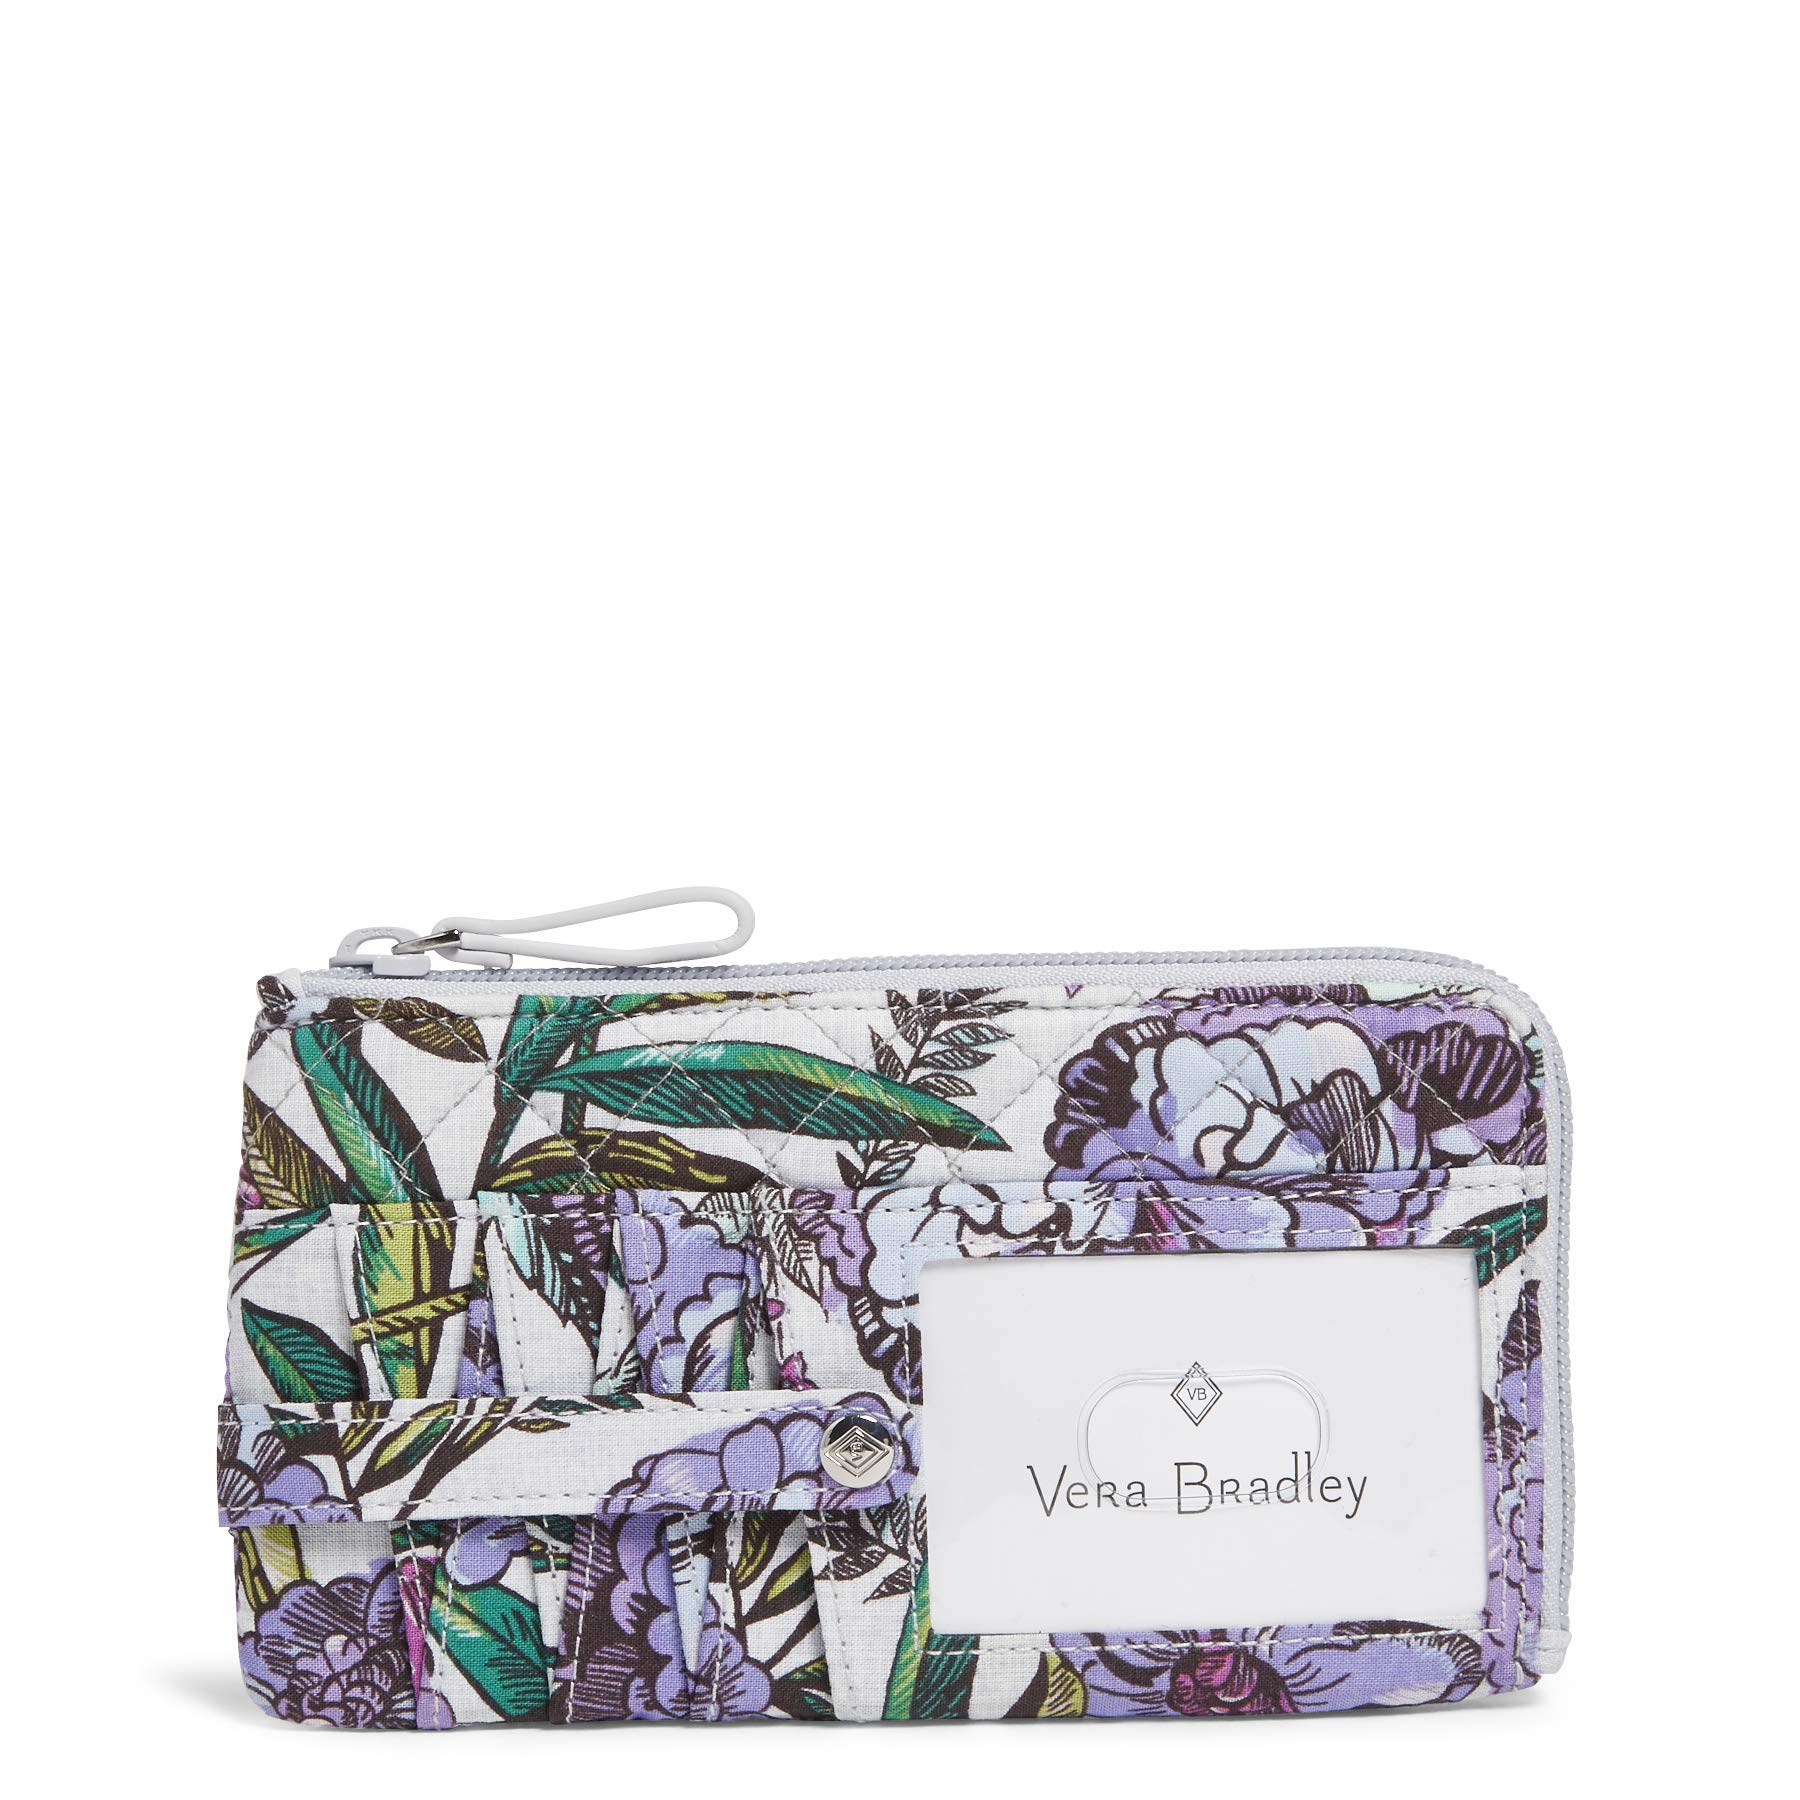 Vera Bradley Iconic RFID Ultimate Card Case, Signature Cotton, Lavender Meadow